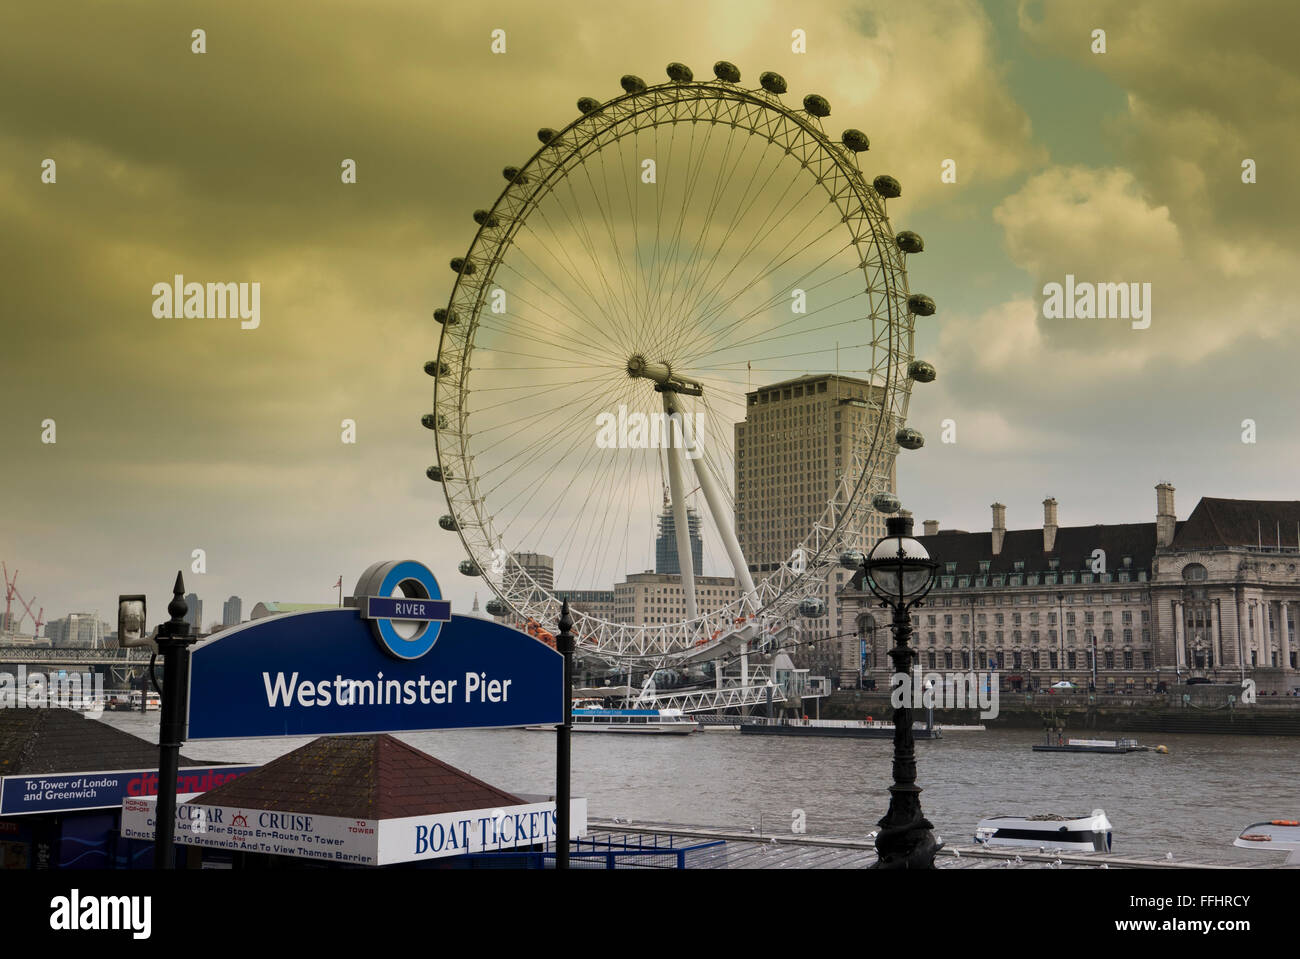 The London Eye wheel by the Thames river in London, United Kingdom. - Stock Image